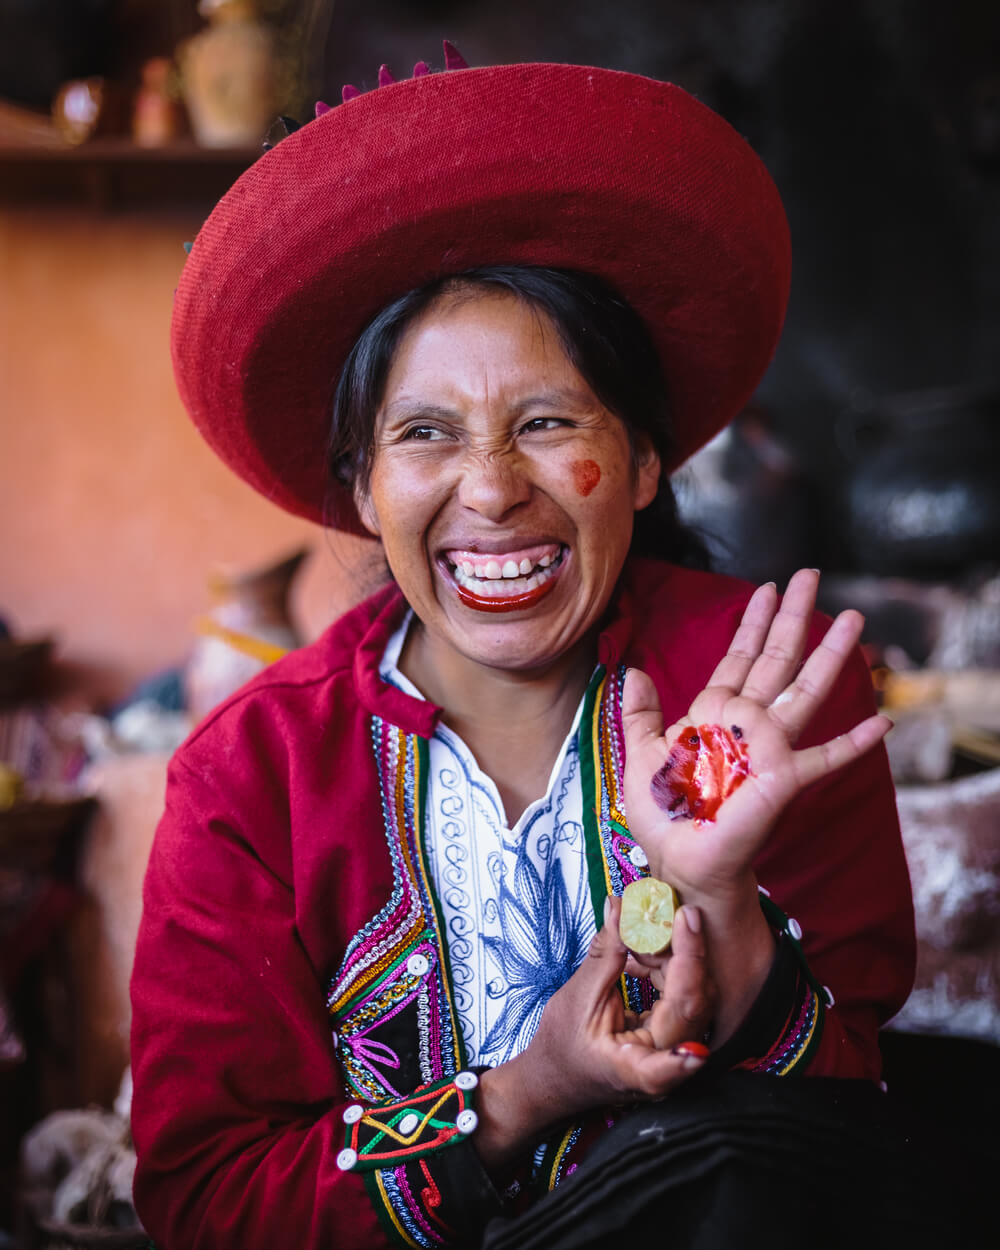 portrait of a Peruvian lady